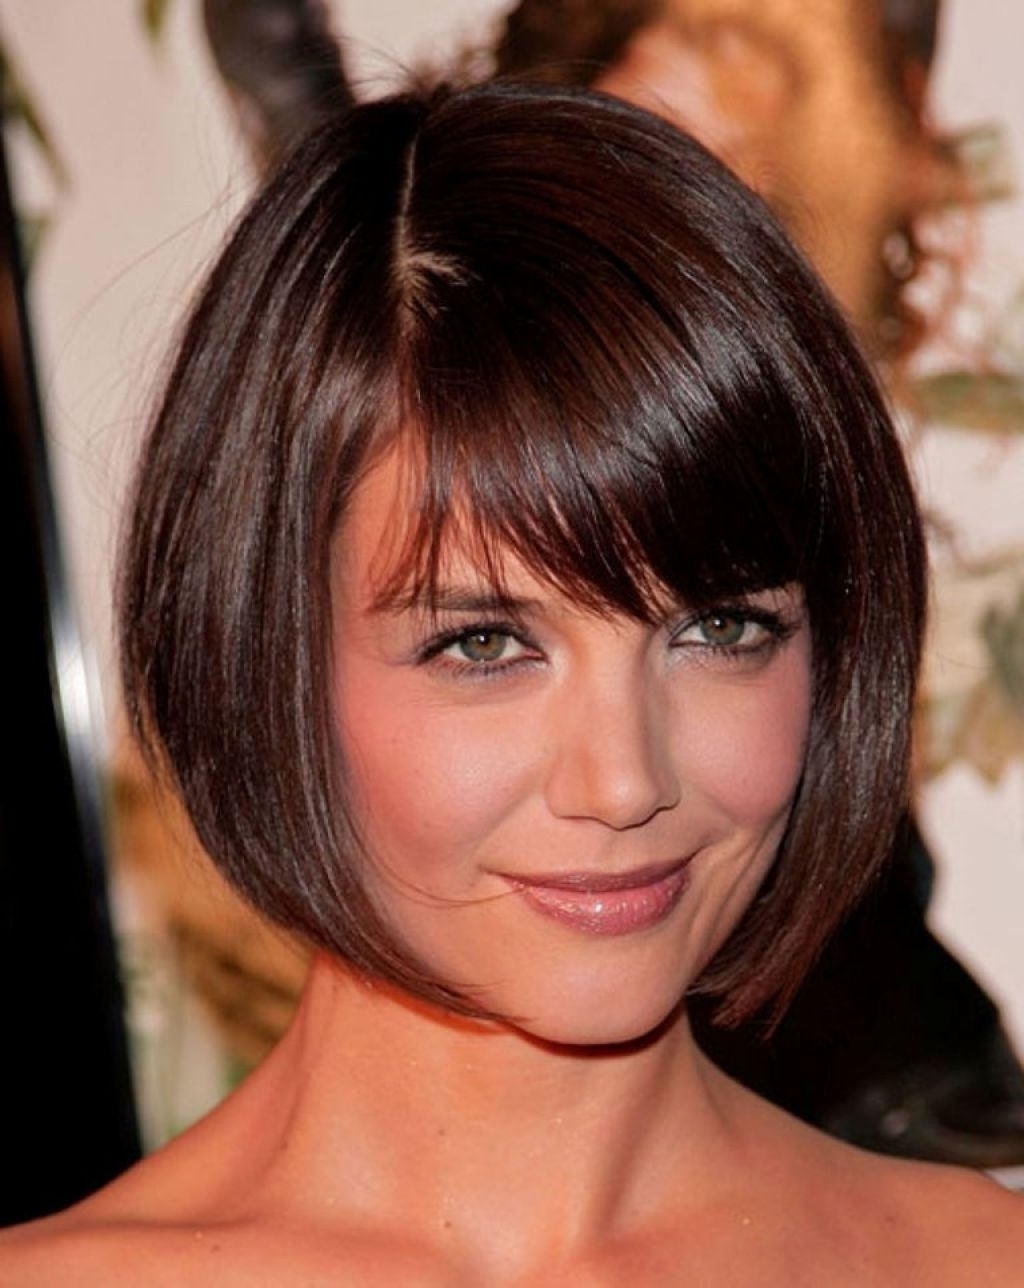 Short Haircut For Square Face Thick Hair – Wavy Haircut Inside Short Haircuts For Square Face (View 13 of 25)